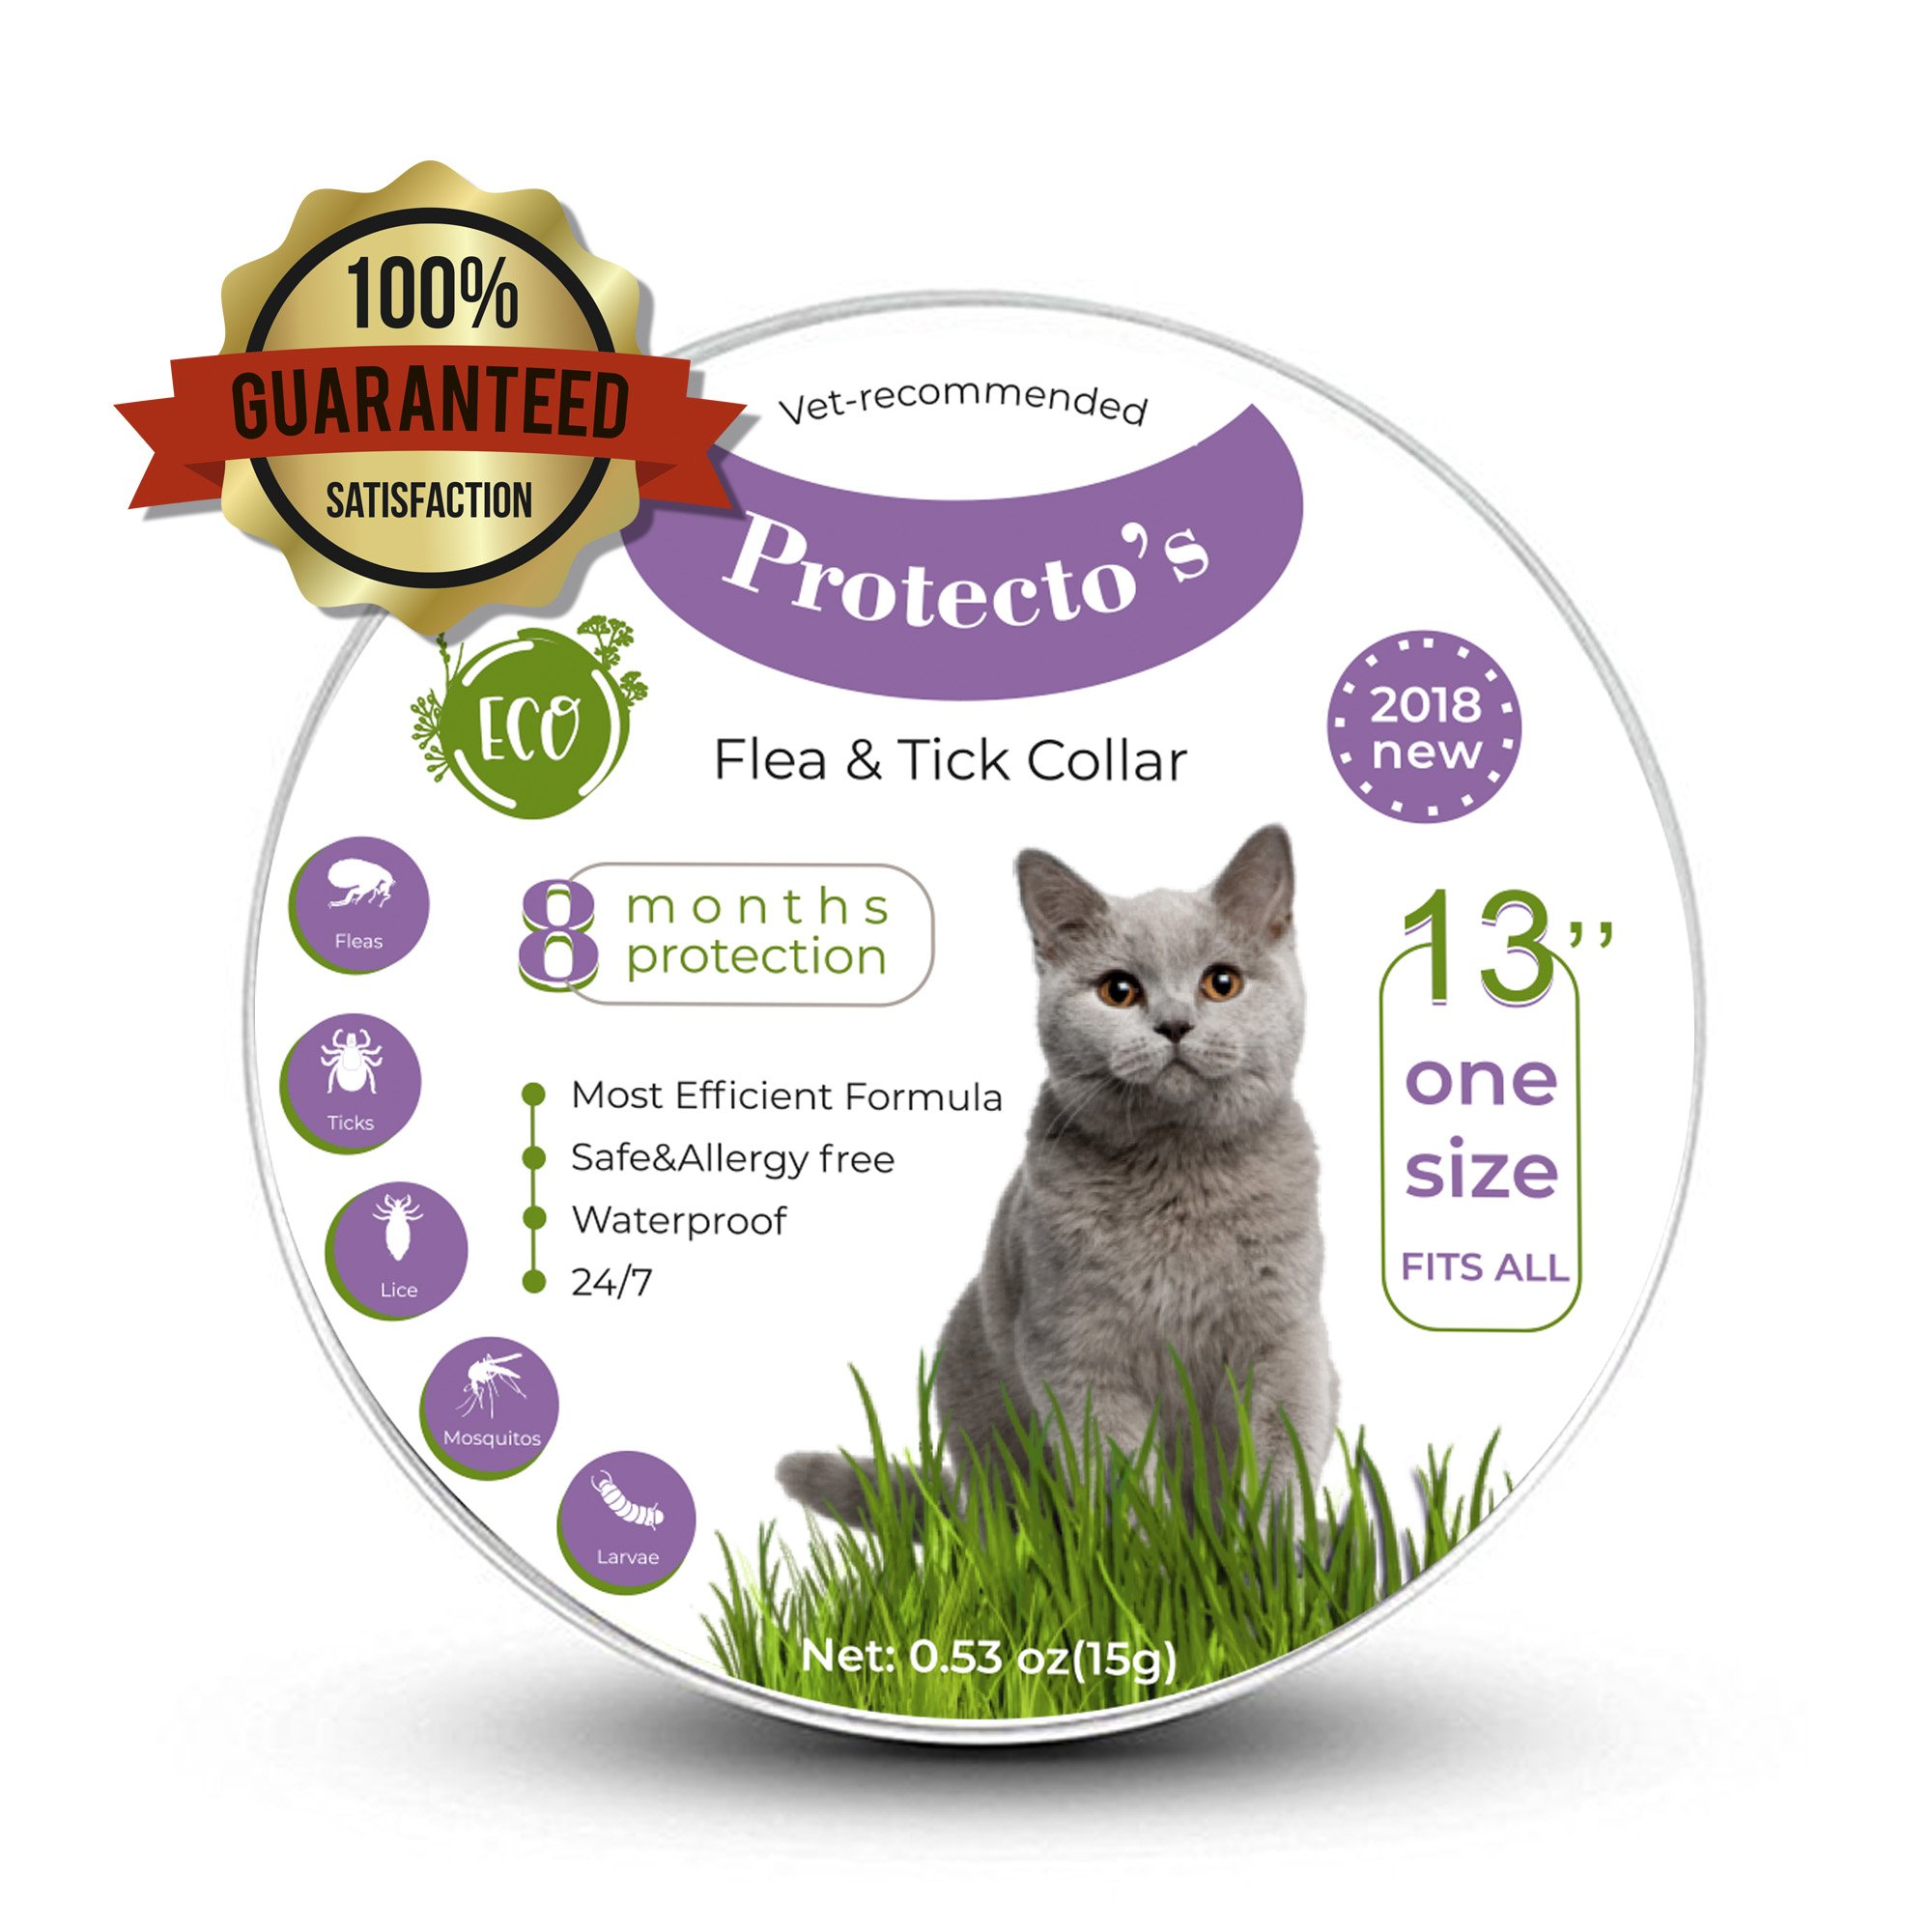 Best collar for cats to prevent fleas and ticks,100% safe hypoallergenic,all natural essential oils only,long-acting 8 months protection,waterproof and fits all the sizes, premium quality pet collar